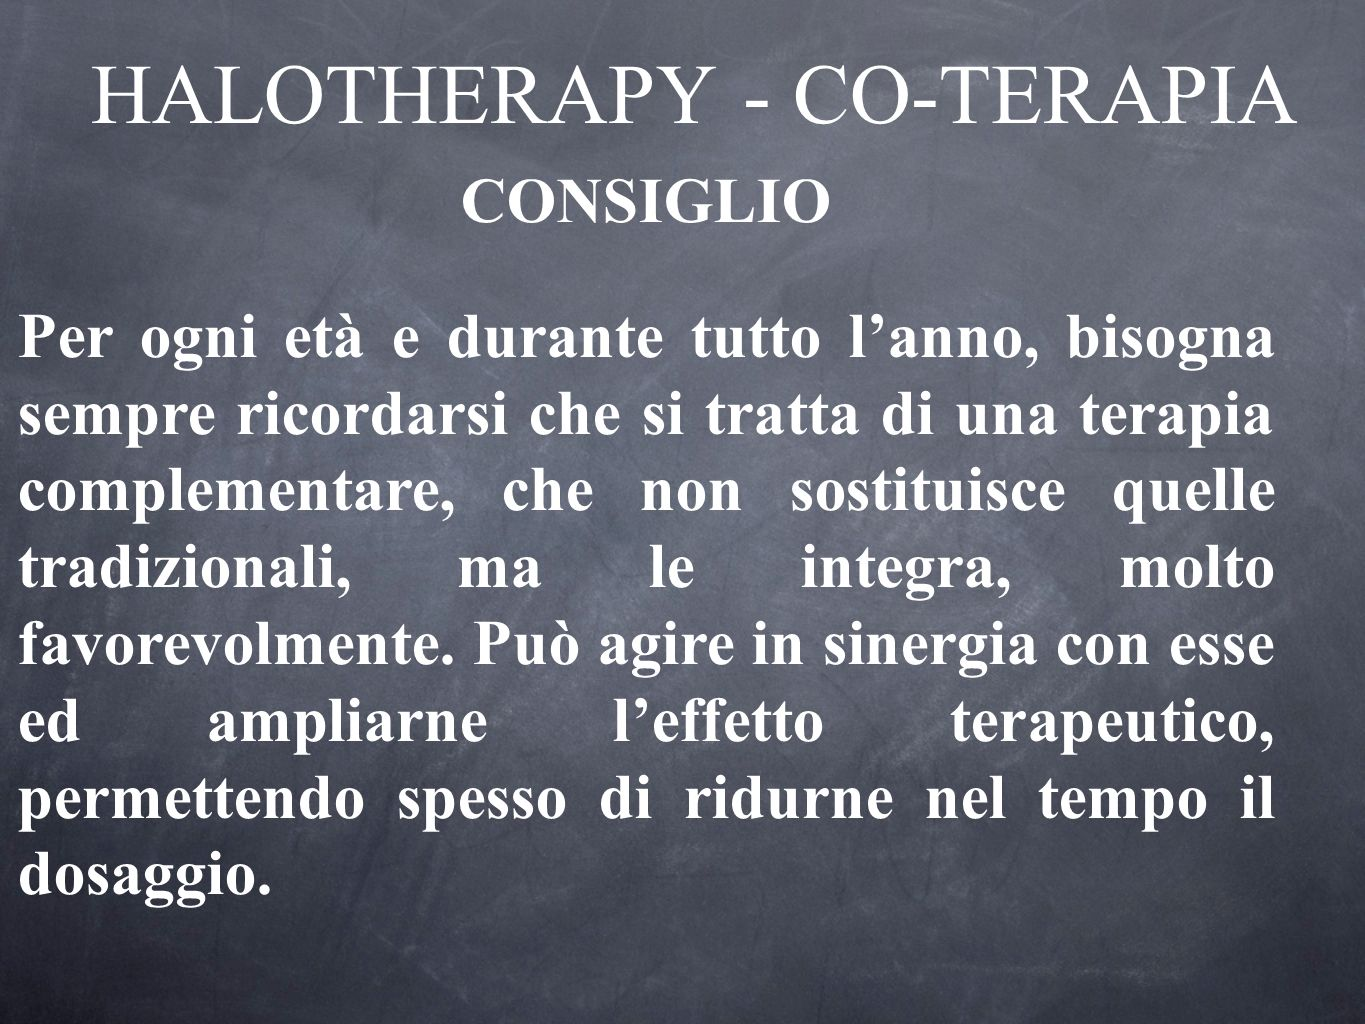 HALOTHERAPY - CO-TERAPIA